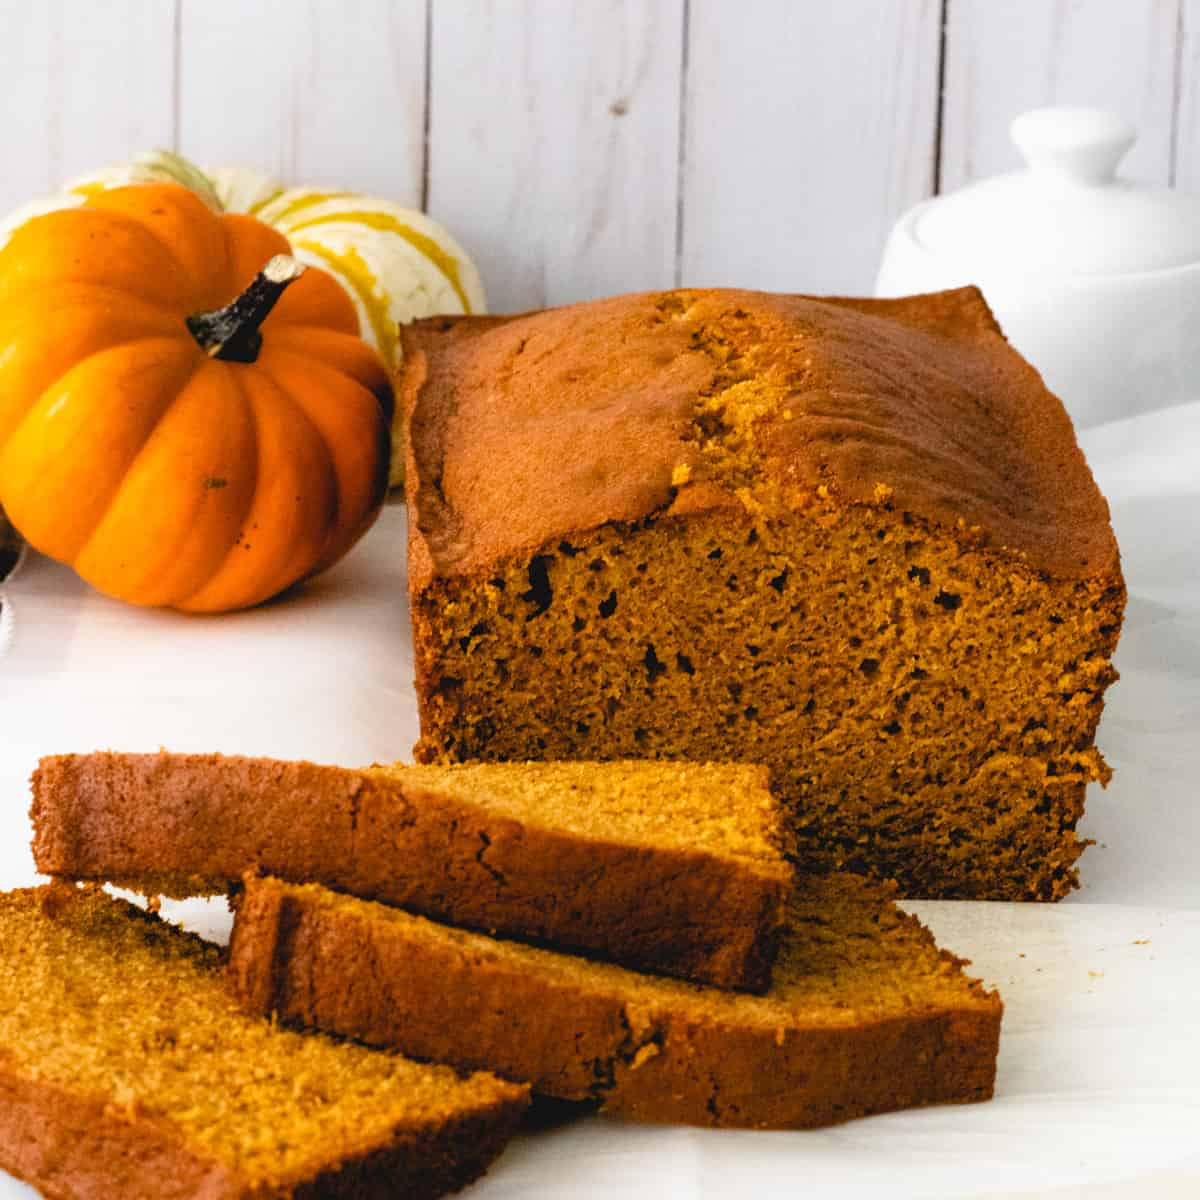 Square image of pumpkin bread with 3 slices on the side, stacked offset.